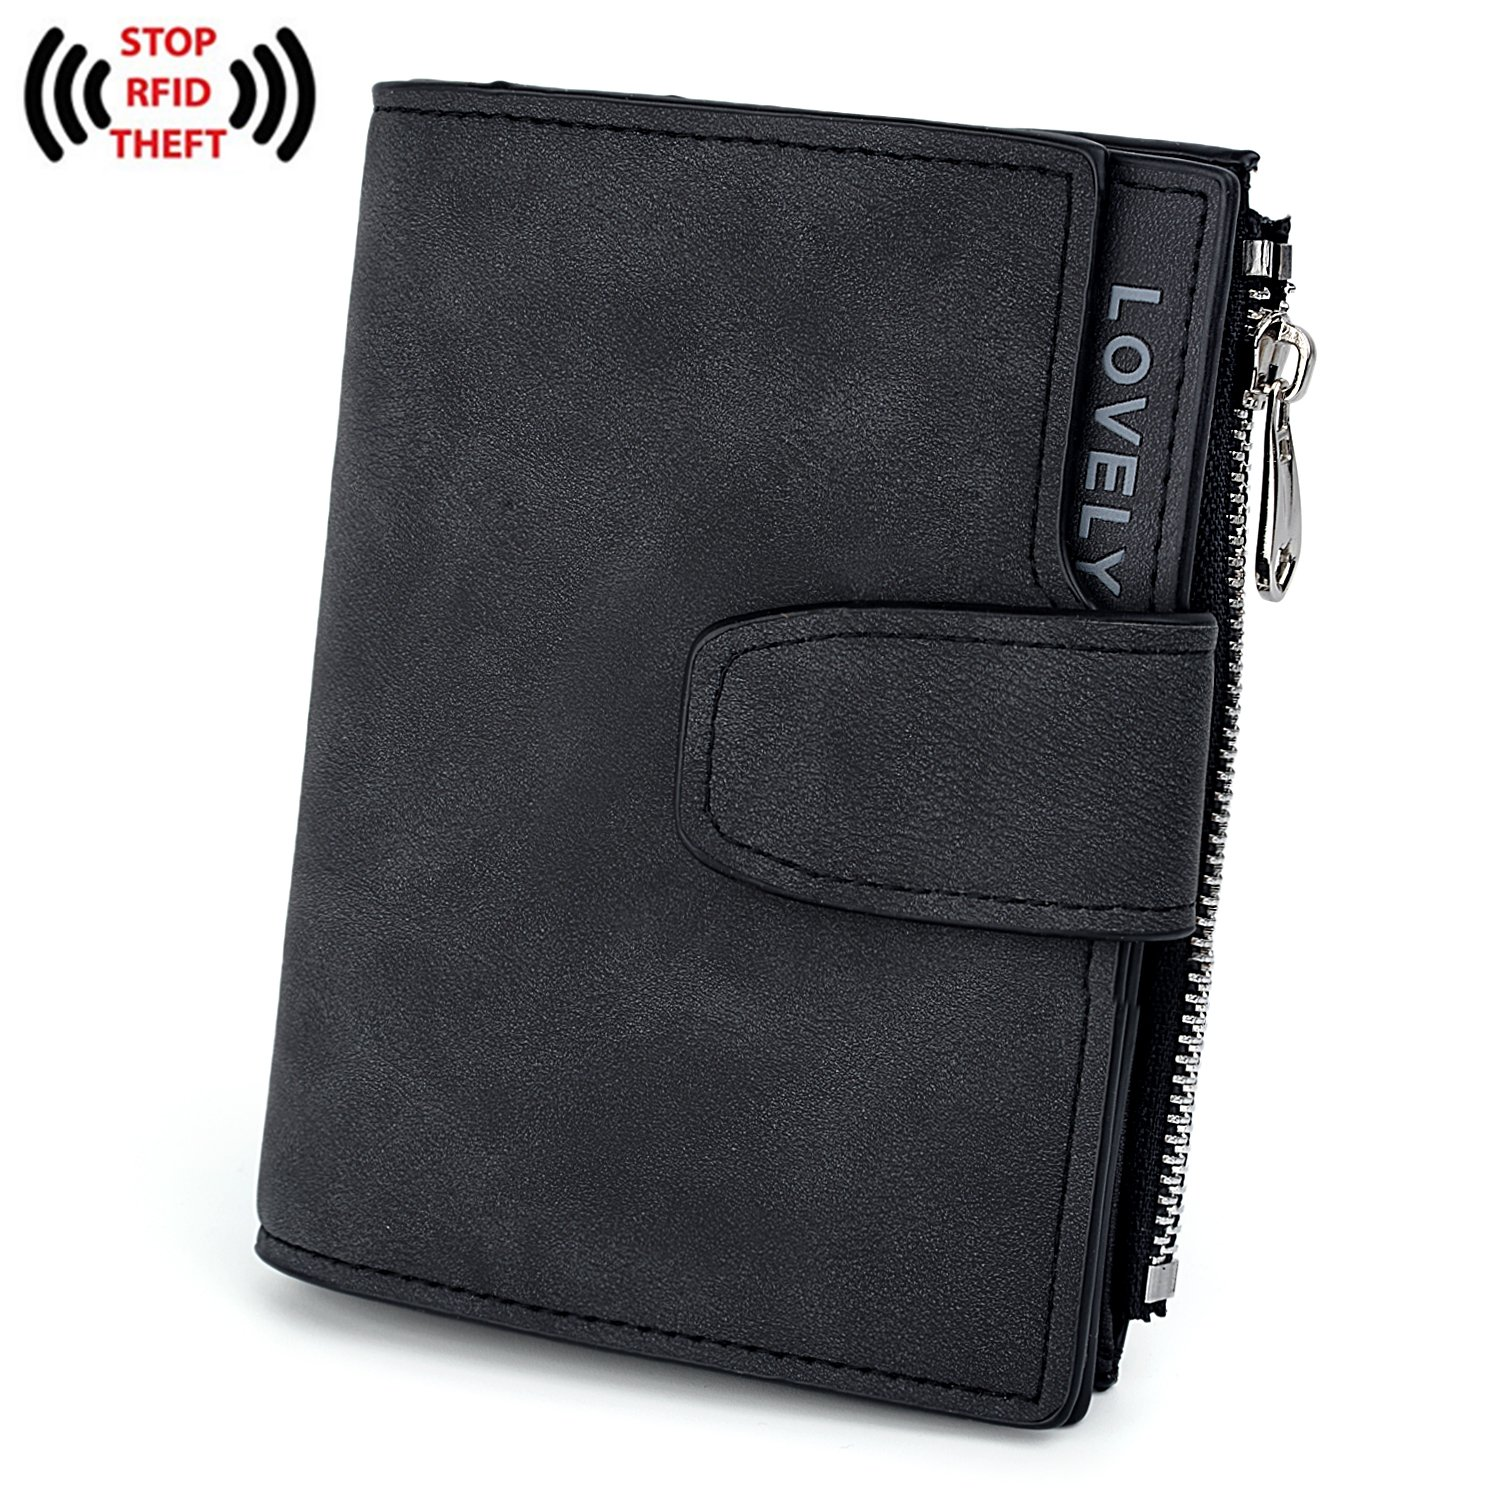 UTO RFID Wallet PU Matte Leather Card Zipper Phone Holder Coin Purse S Black